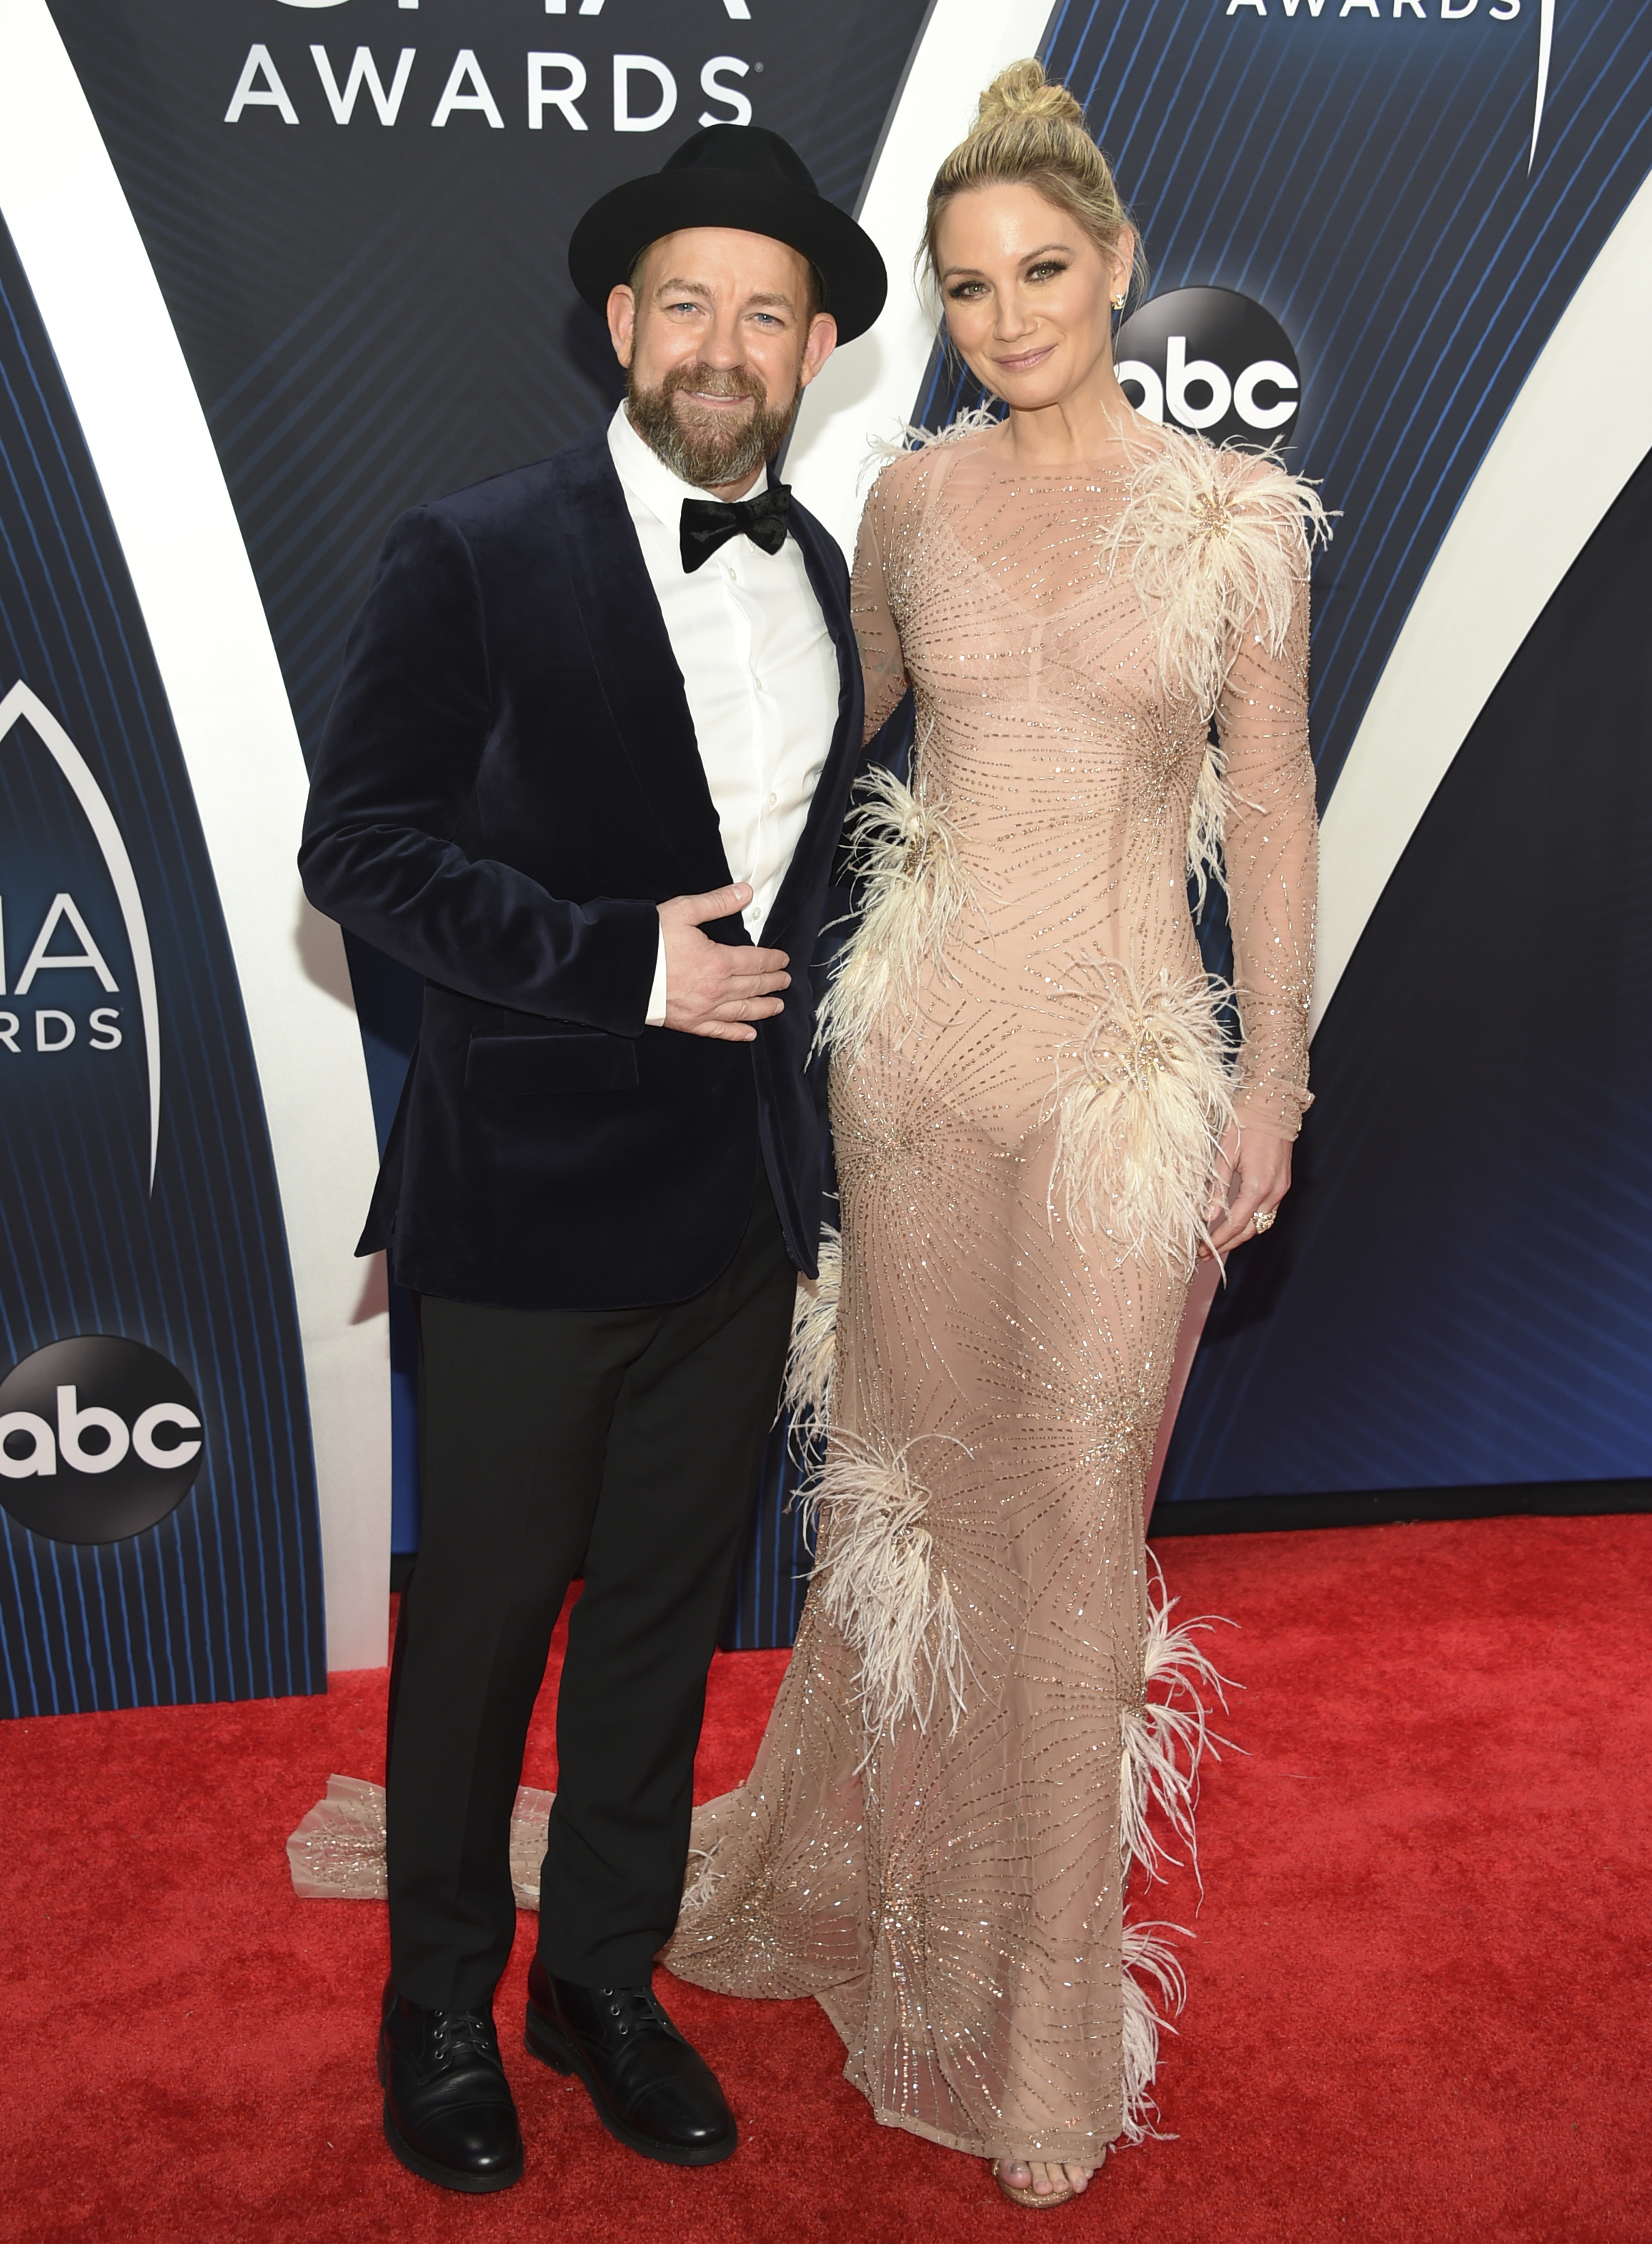 "<div class=""meta image-caption""><div class=""origin-logo origin-image ap""><span>AP</span></div><span class=""caption-text"">Kristian Bush, left, and Jennifer Nettles, of Sugarland, arrive at the 52nd annual CMA Awards on Wednesday, Nov. 14, 2018, in Nashville, Tenn. (Photo by Evan Agostini/Invision/AP) (Evan Agostini/Invision/AP)</span></div>"